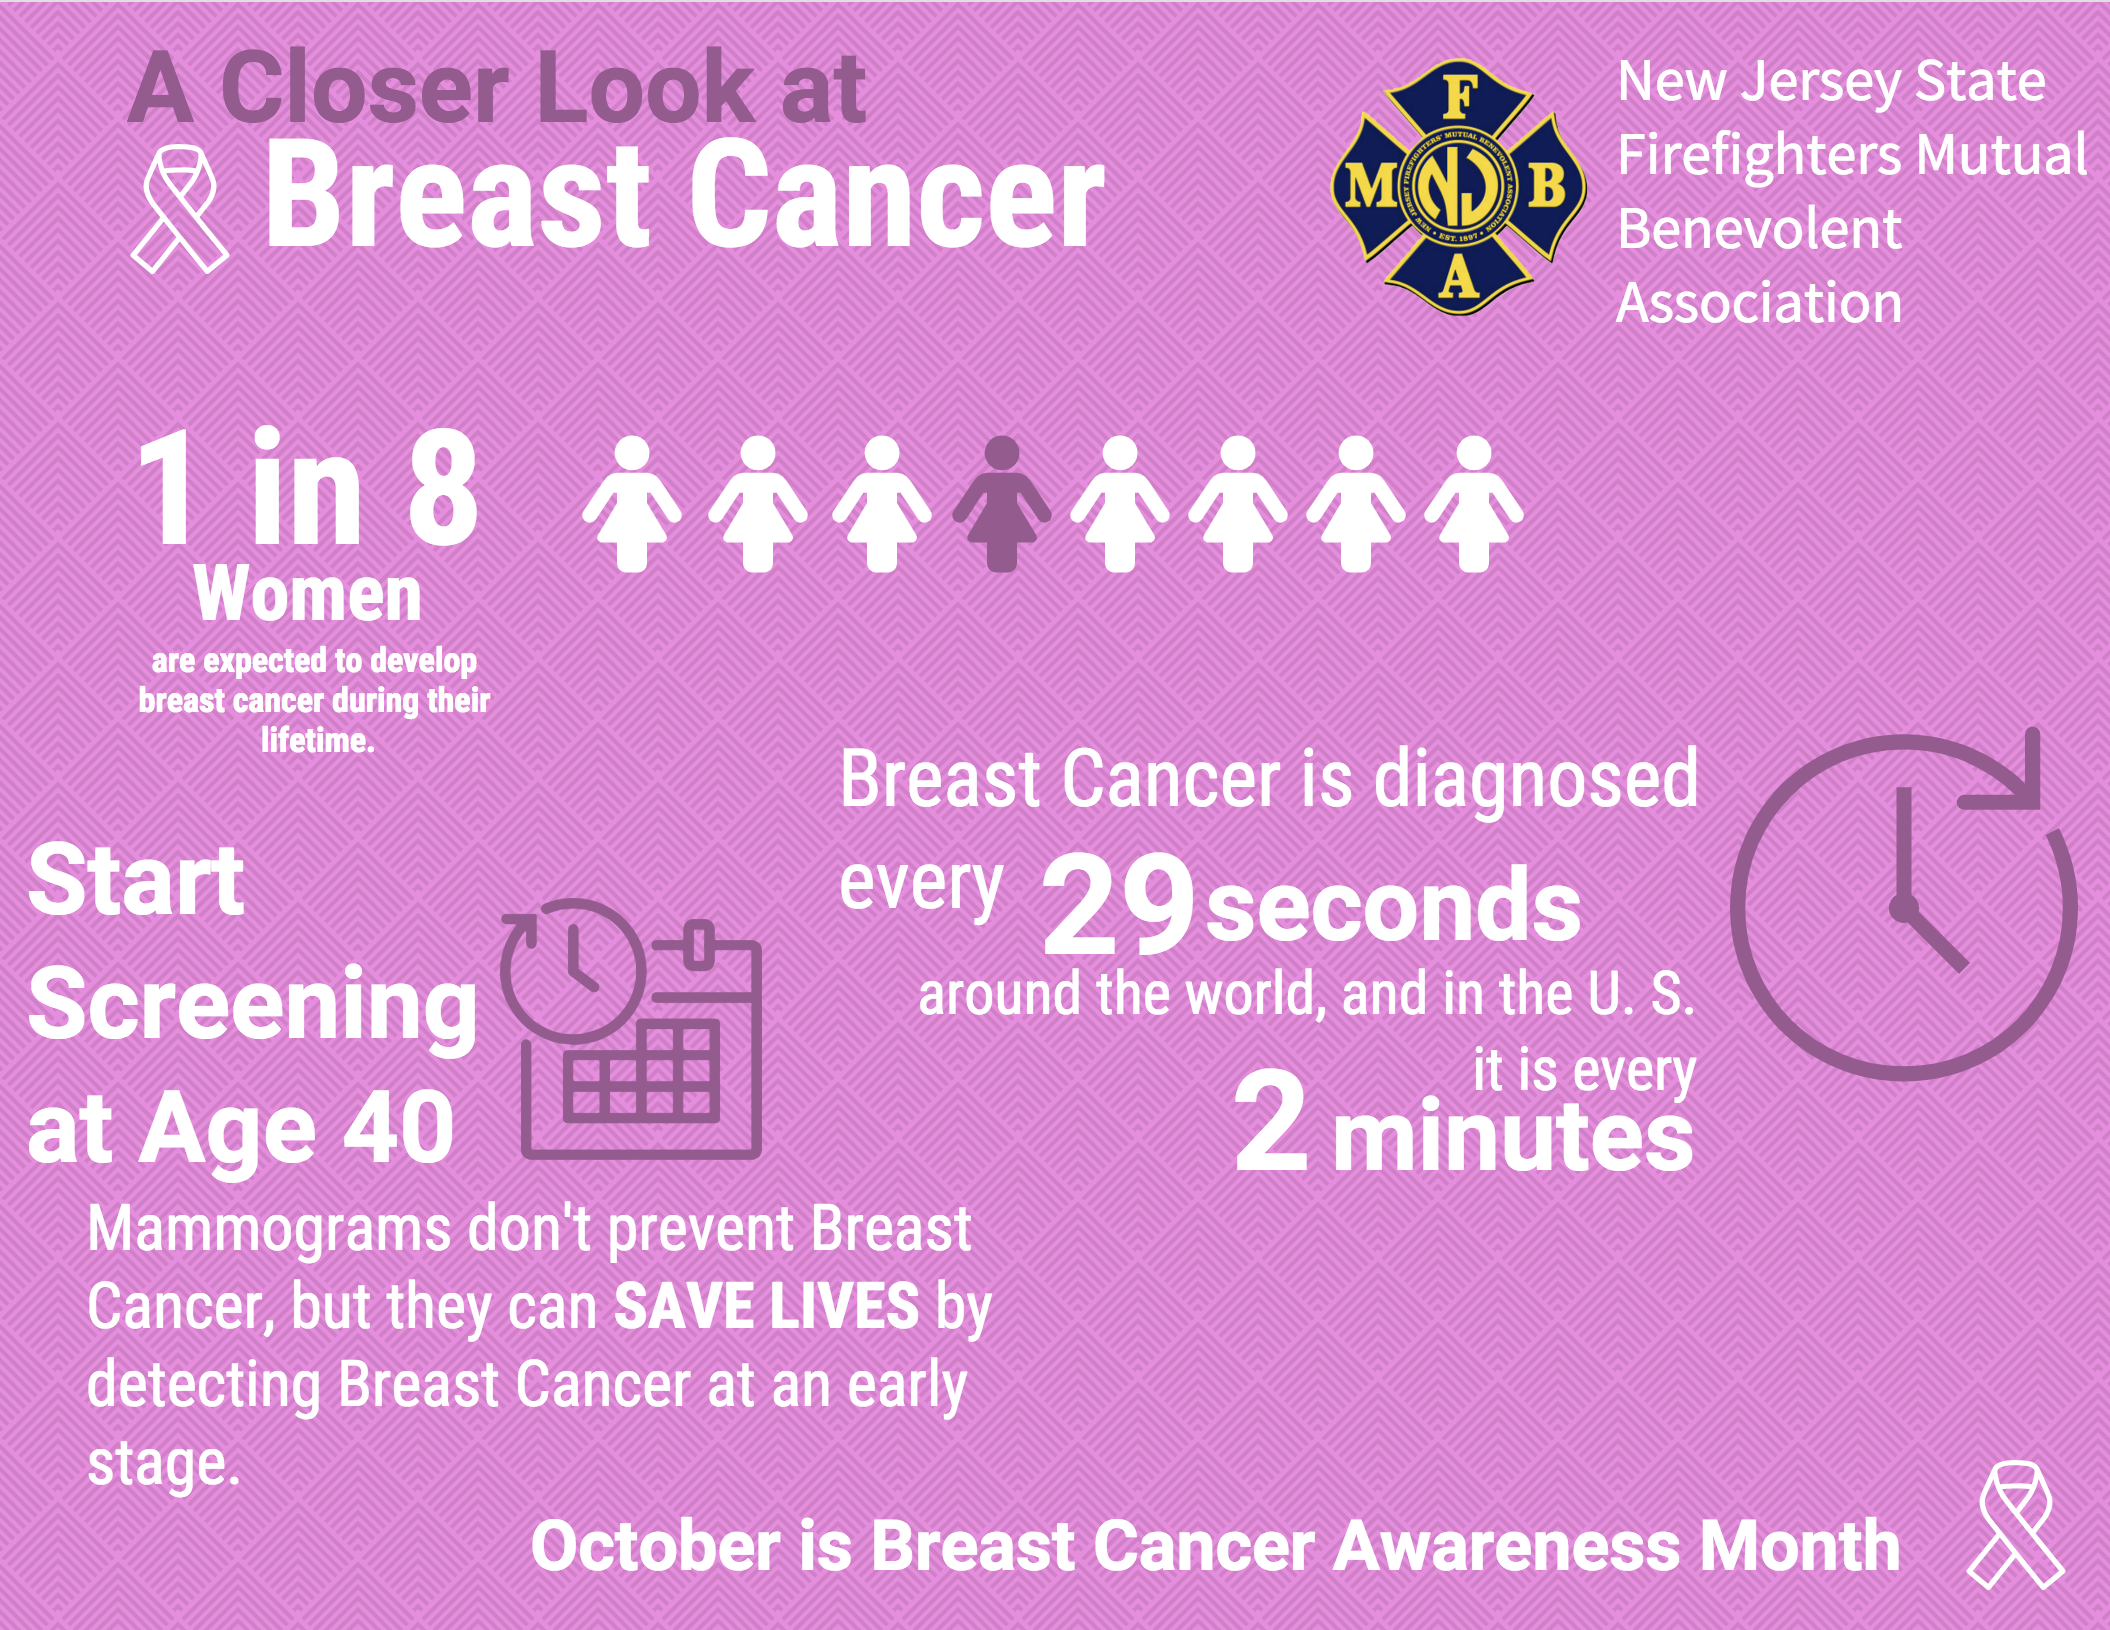 Breast Cancer Awareness Month New Jersey Firefighters Mutual